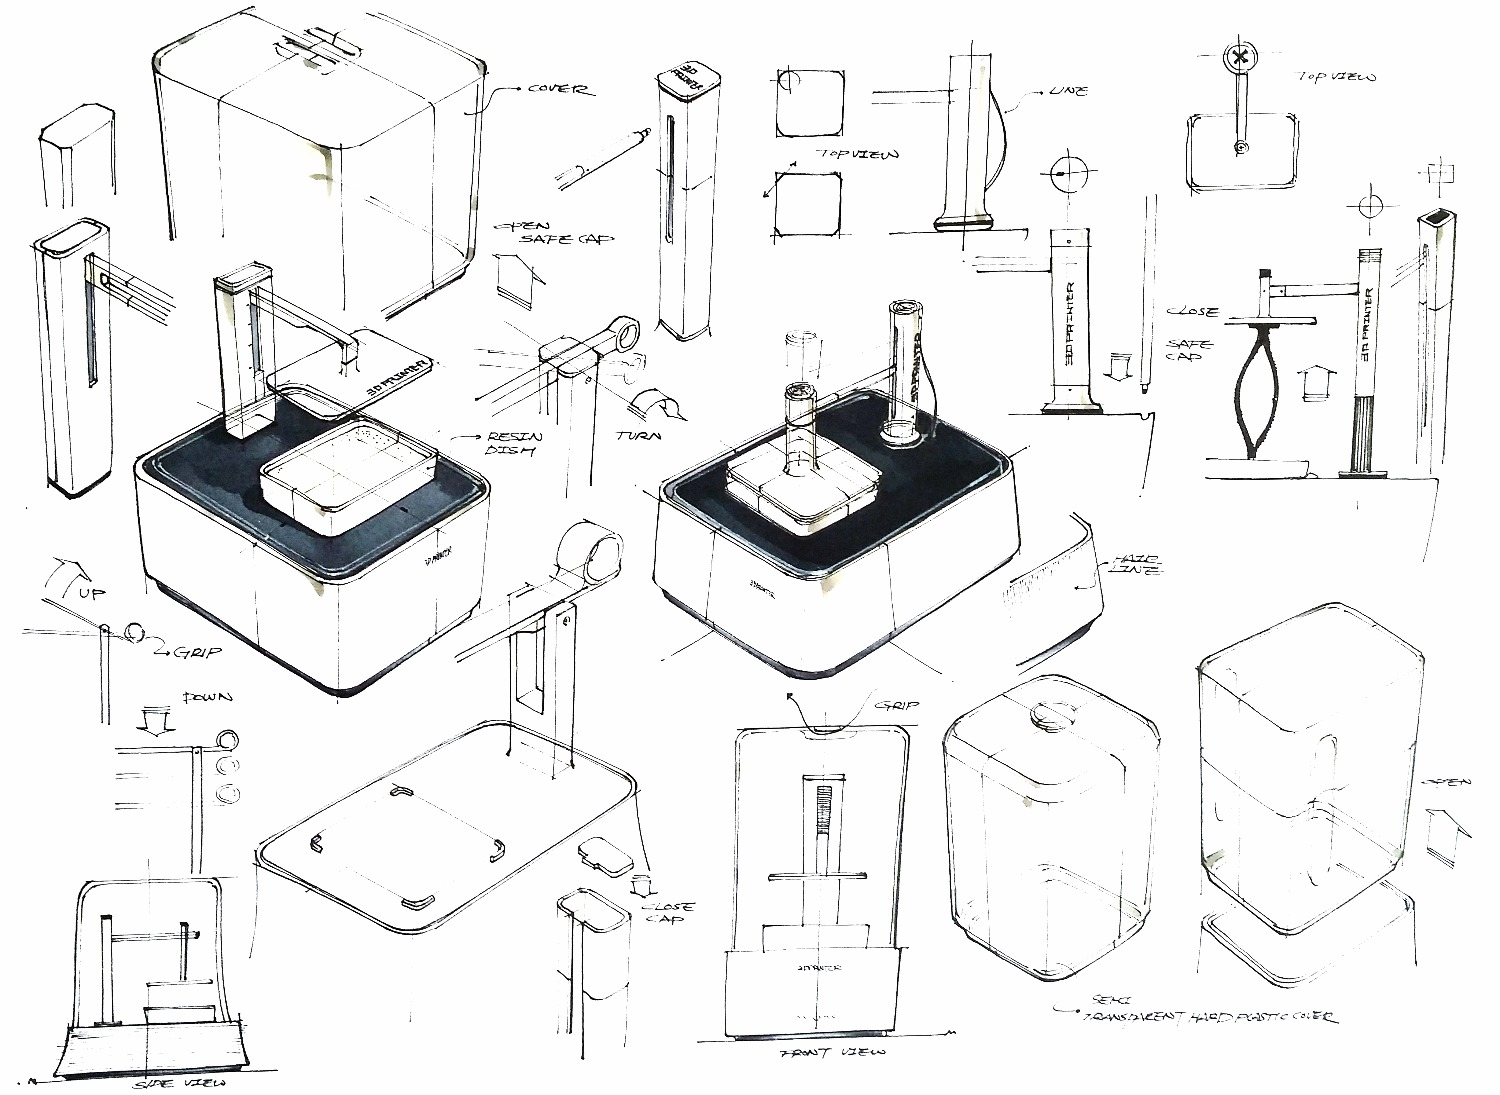 3D printer design sketch2